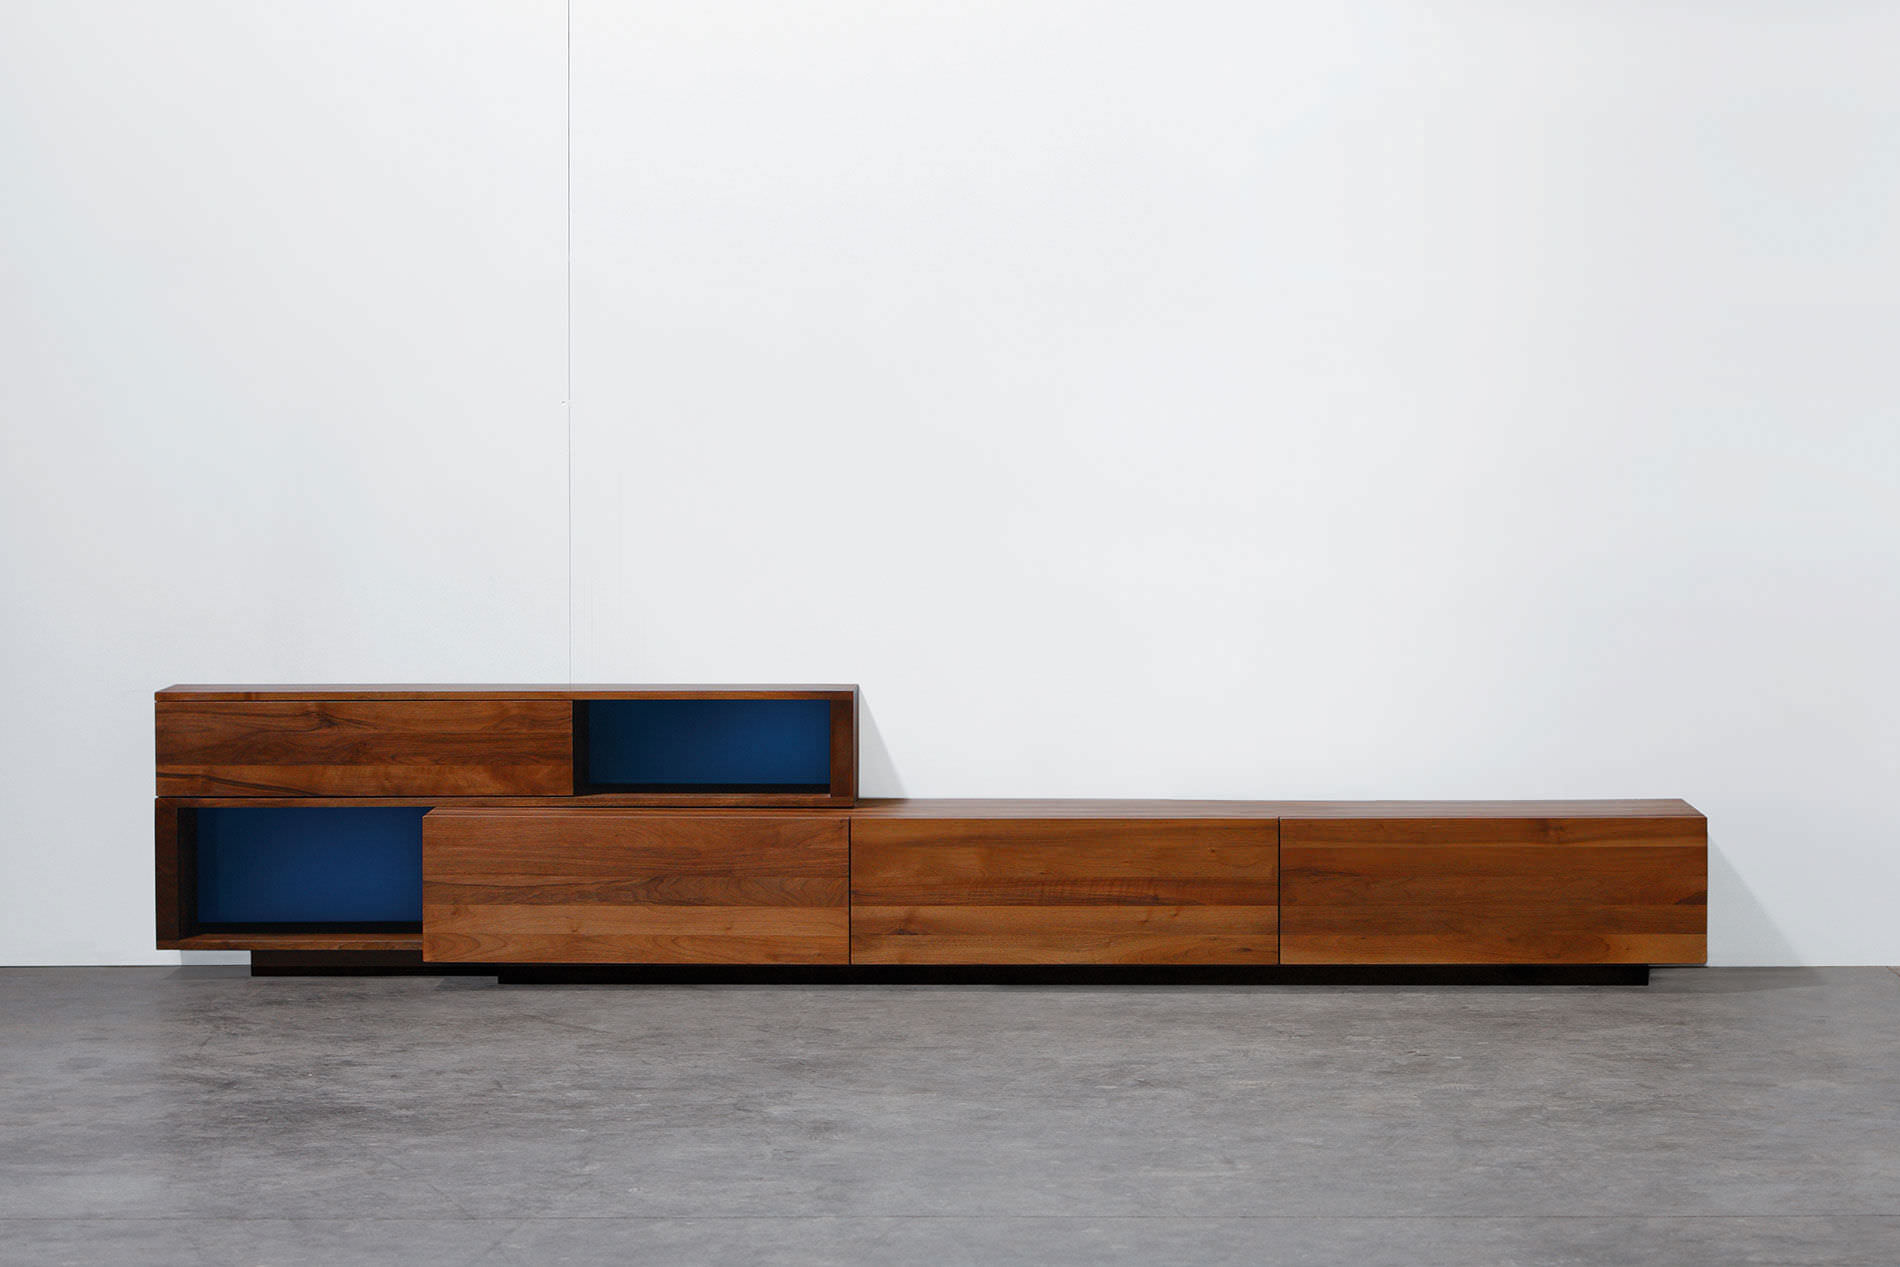 Contemporary sideboard   oak   walnut   solid wood LOG by Michael  Schneider Artisan Solid Wood. Contemporary sideboard   oak   walnut   solid wood   LOG by